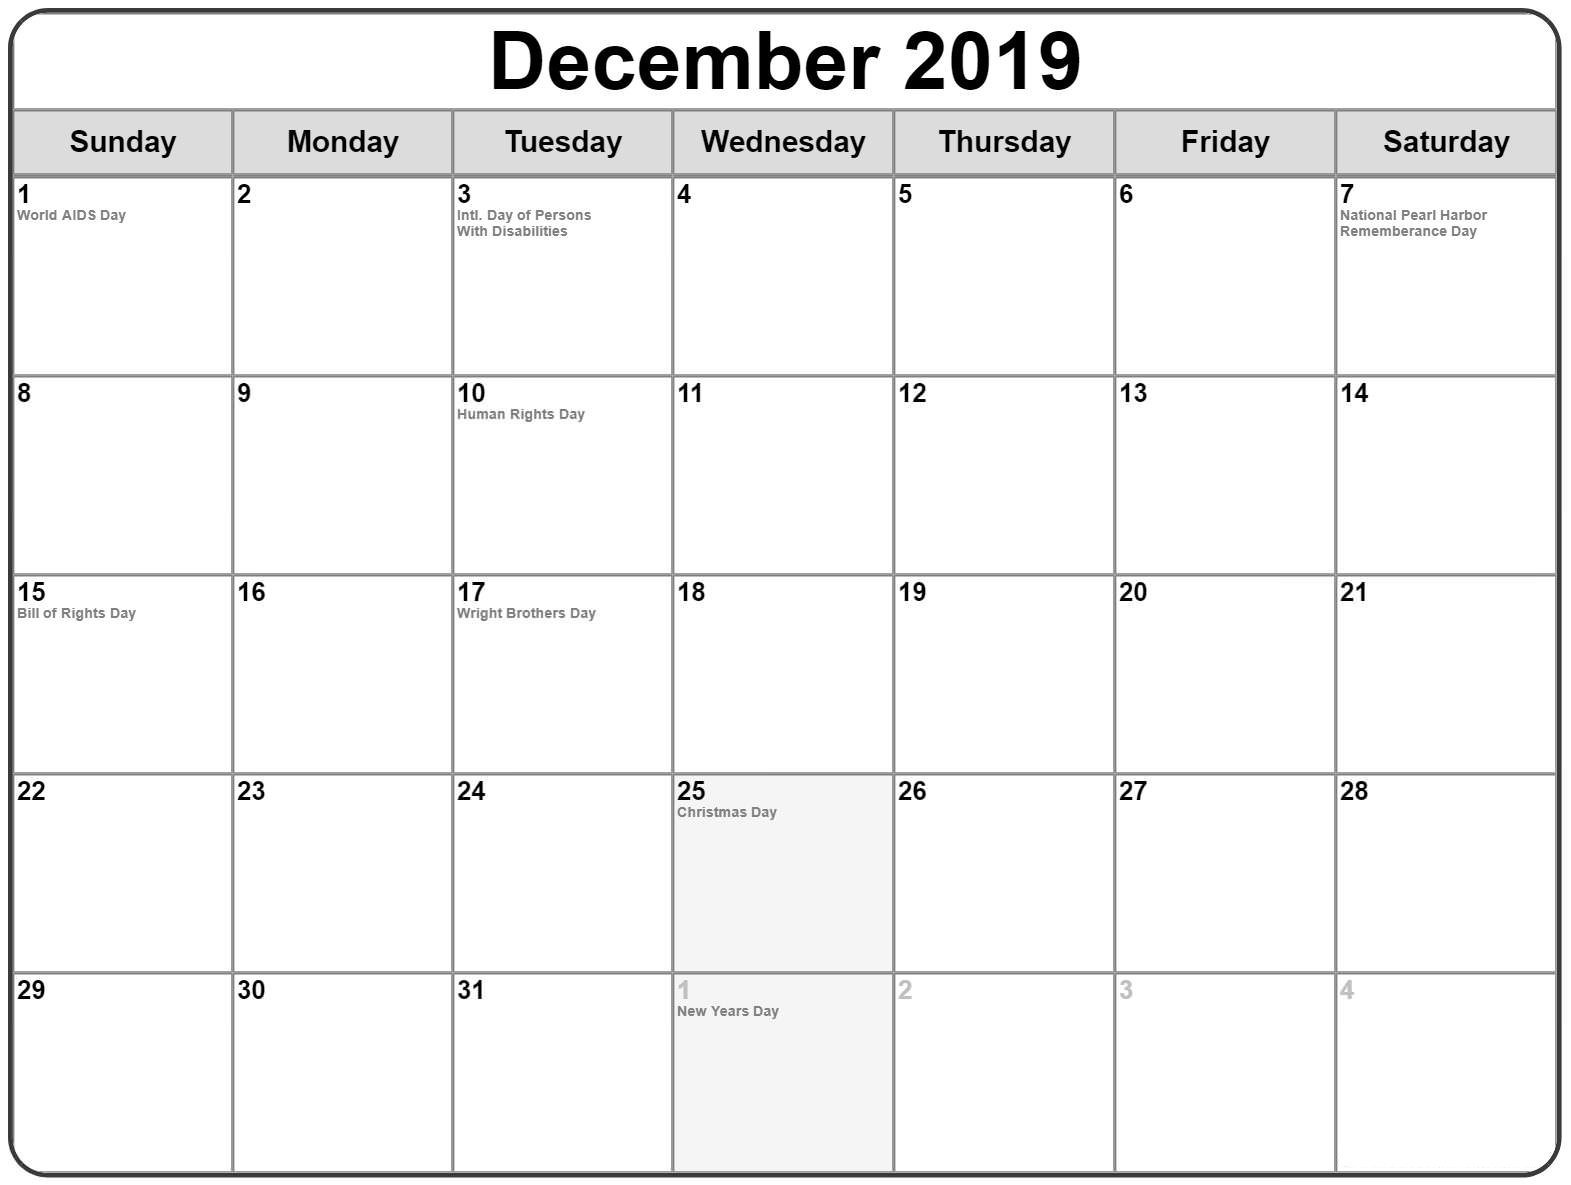 December 2019 Printable Calendar with Holidays